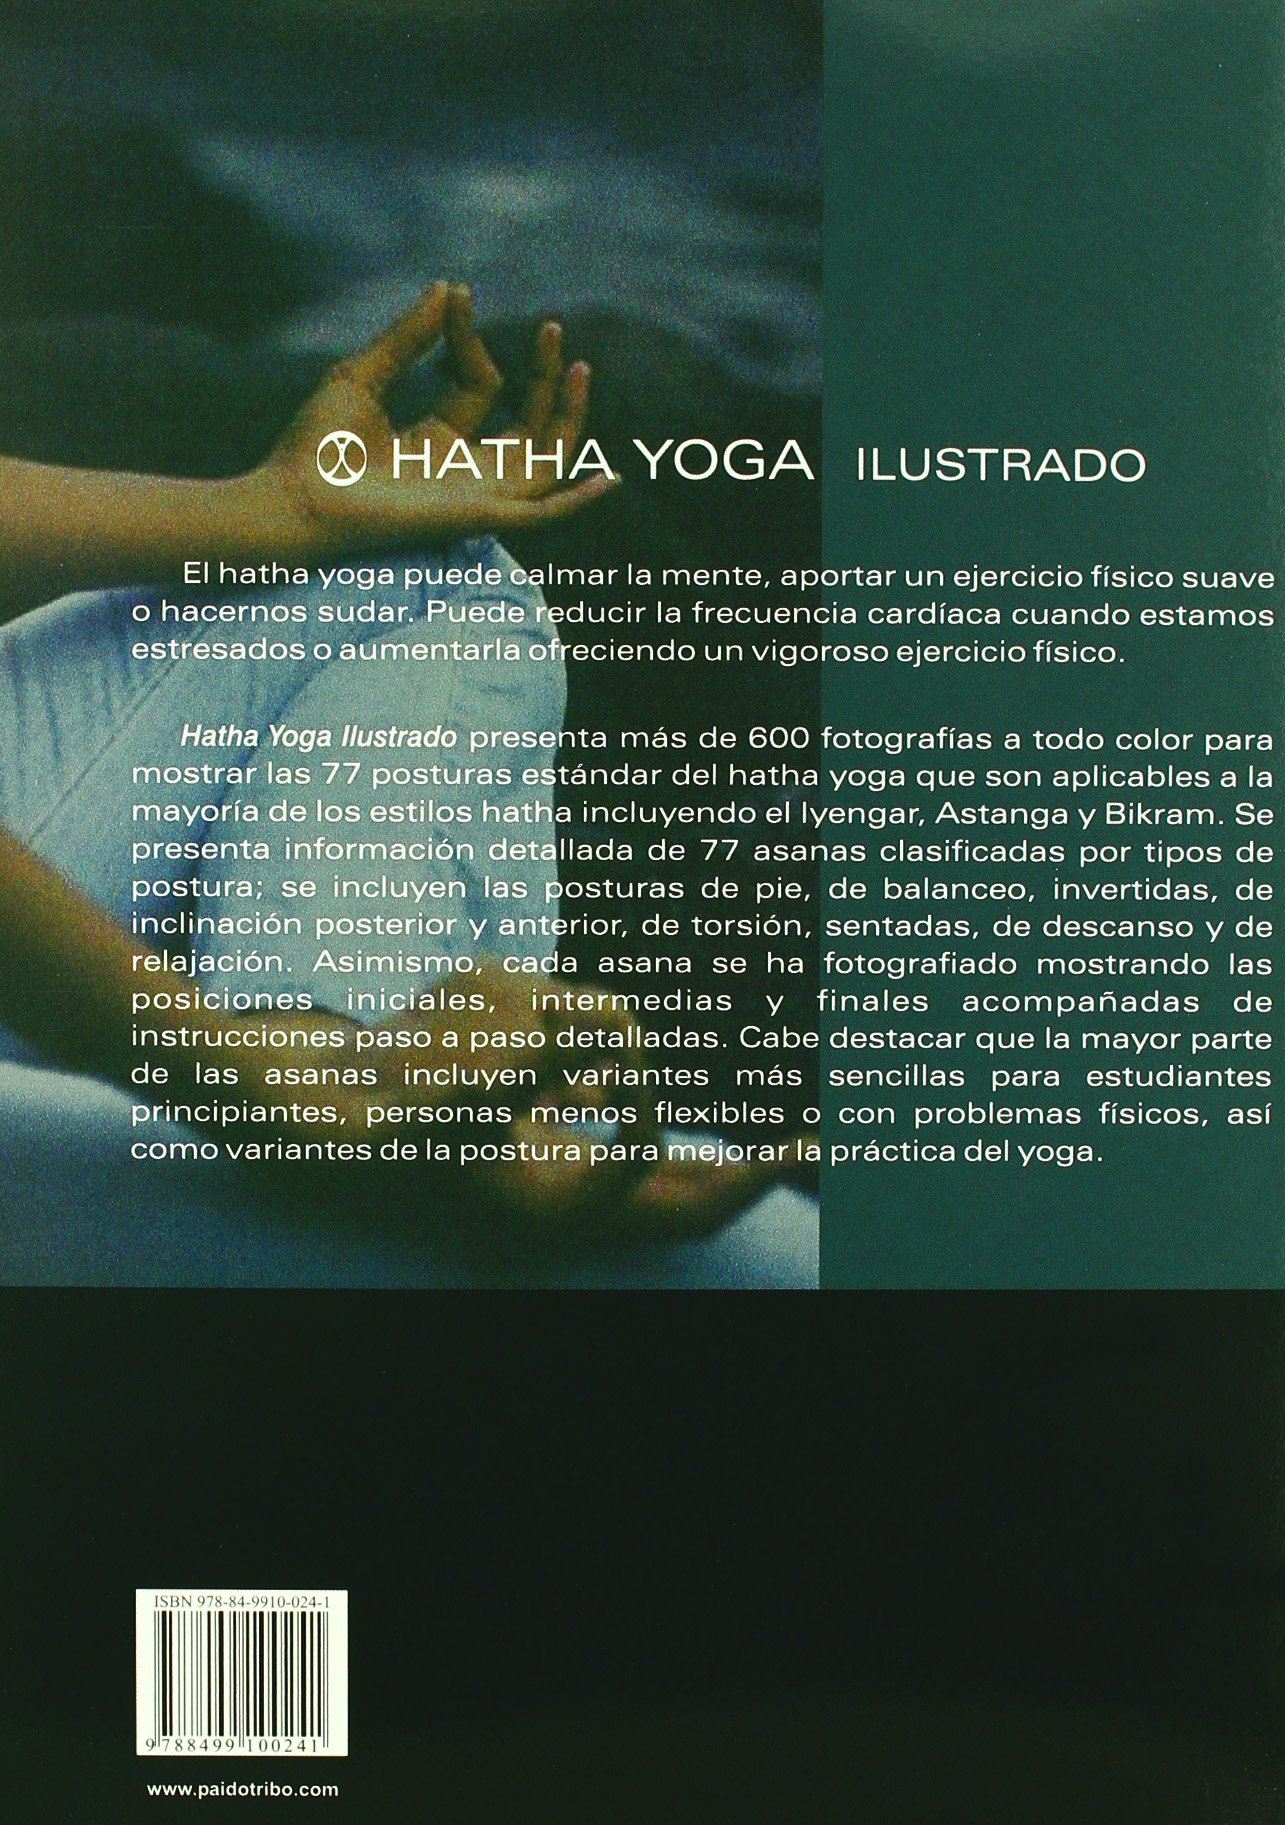 Hatha yoga ilustrado (Color): Amazon.es: Martin Kirk, Brooke ...